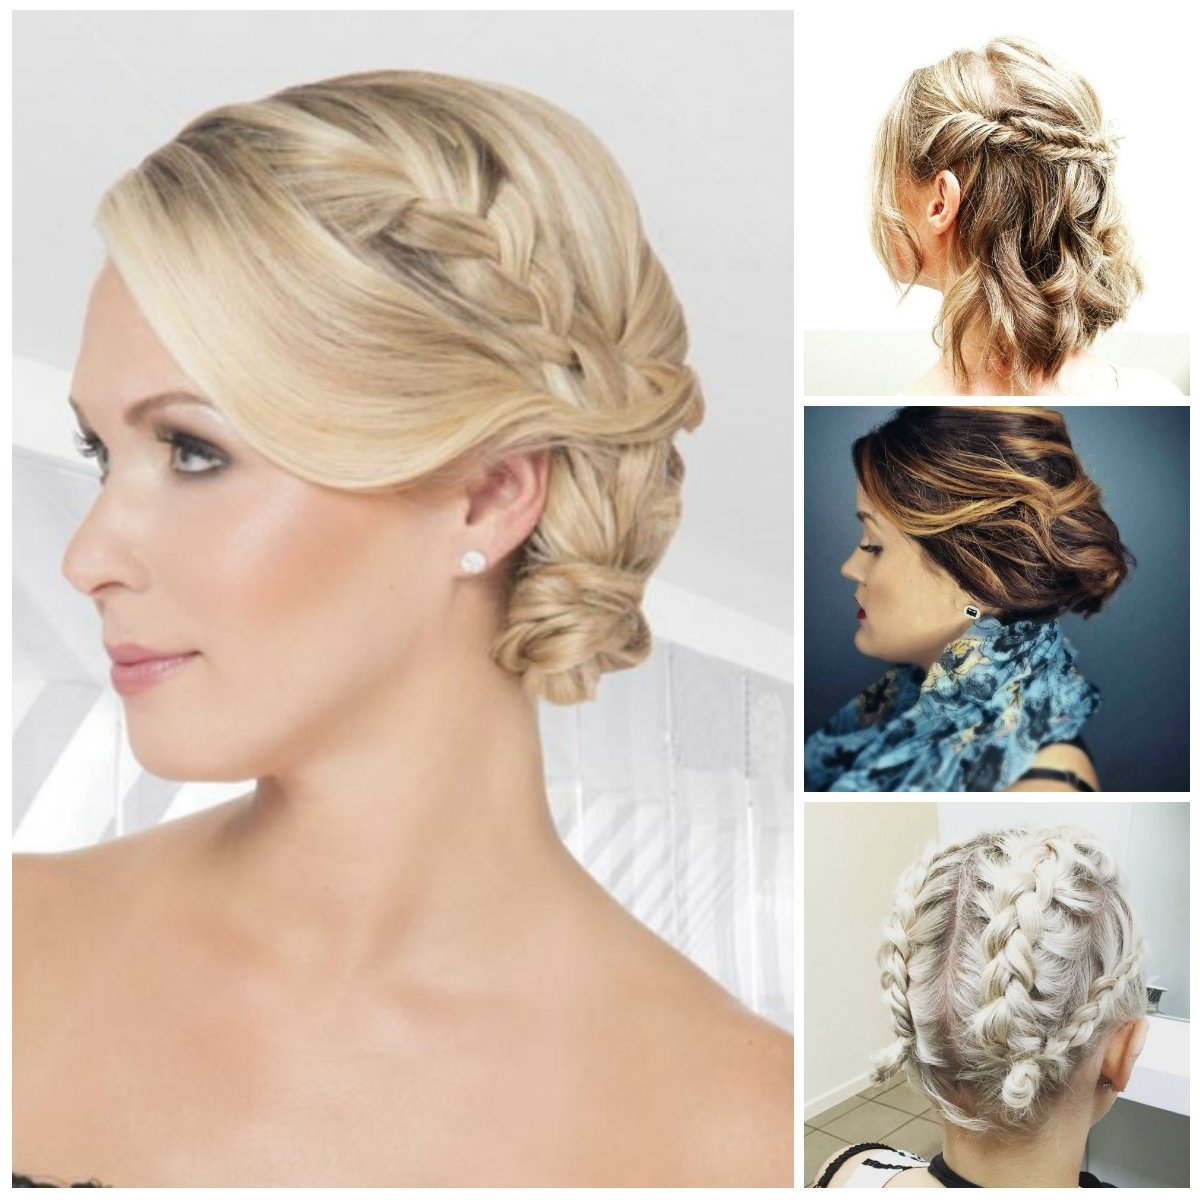 Fashion Blog With Trendy Classic Wedding Hairstyles For Short Hair (View 3 of 15)